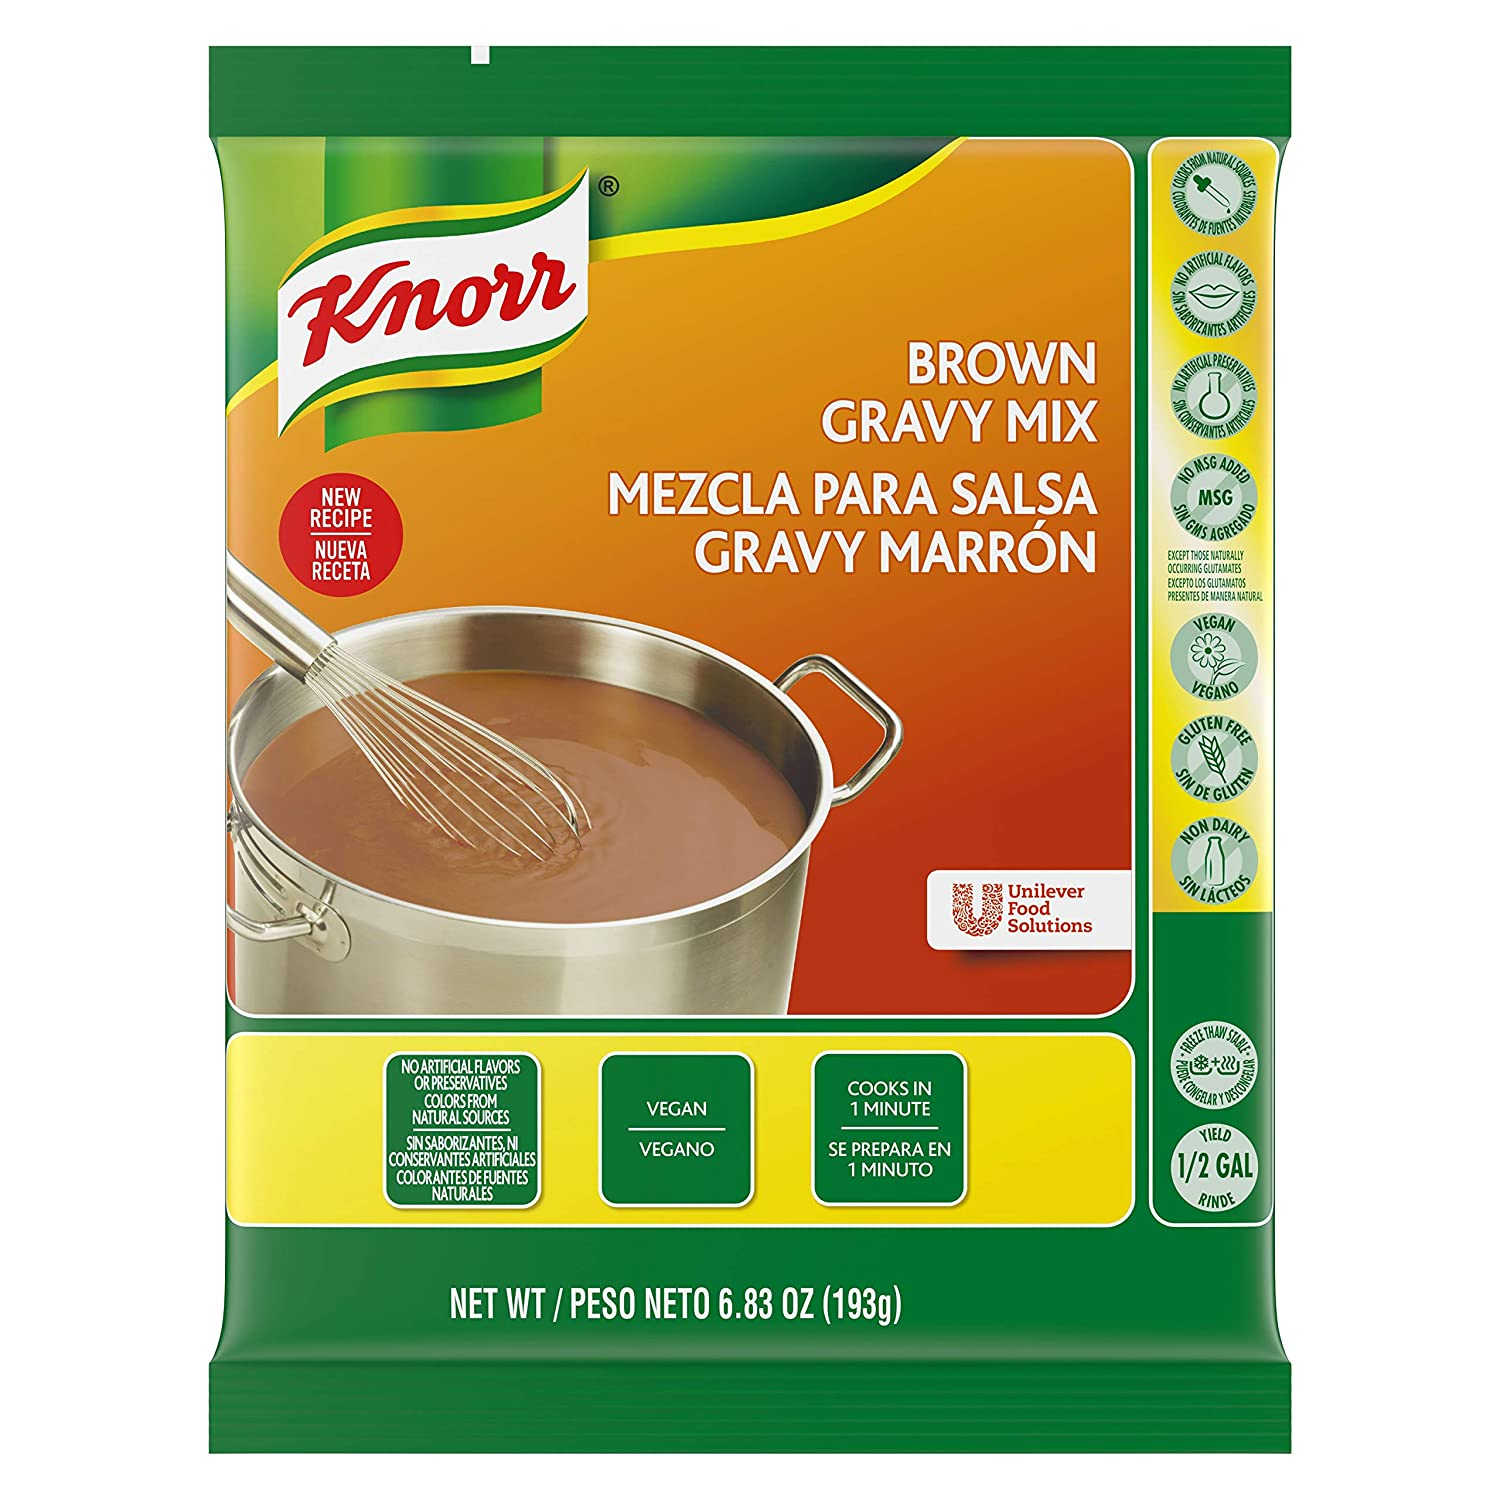 Amazon.com : Knorr Gravy Mix Brown 6.83 oz, Pack of 6 : Grocery & Gourmet Food